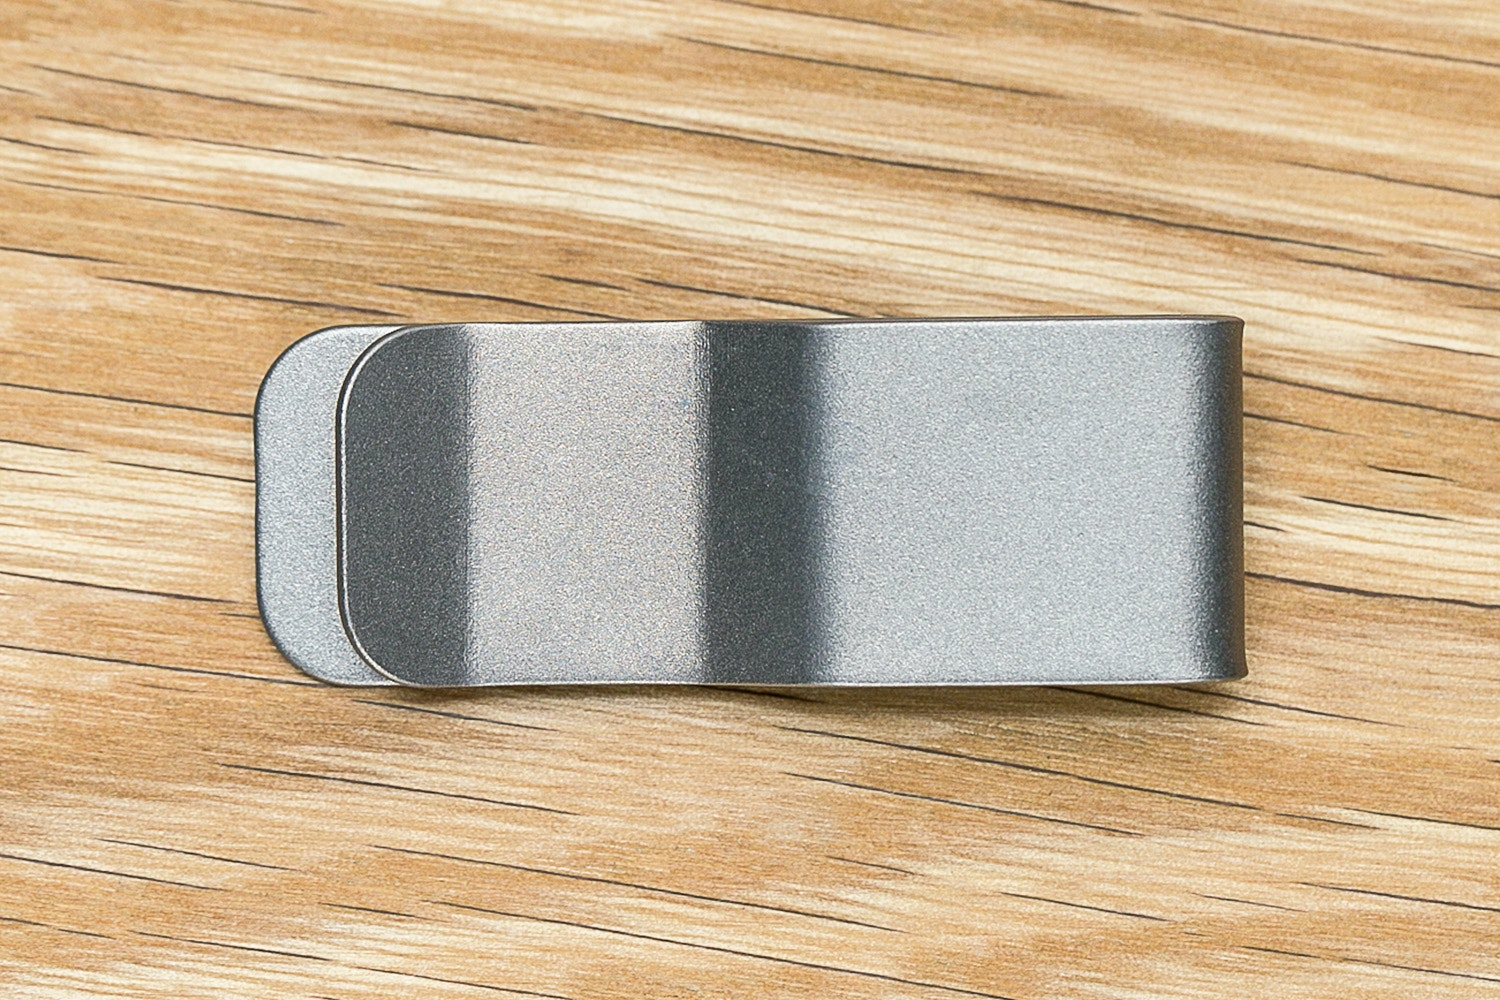 Vargo Titanium Money Clip